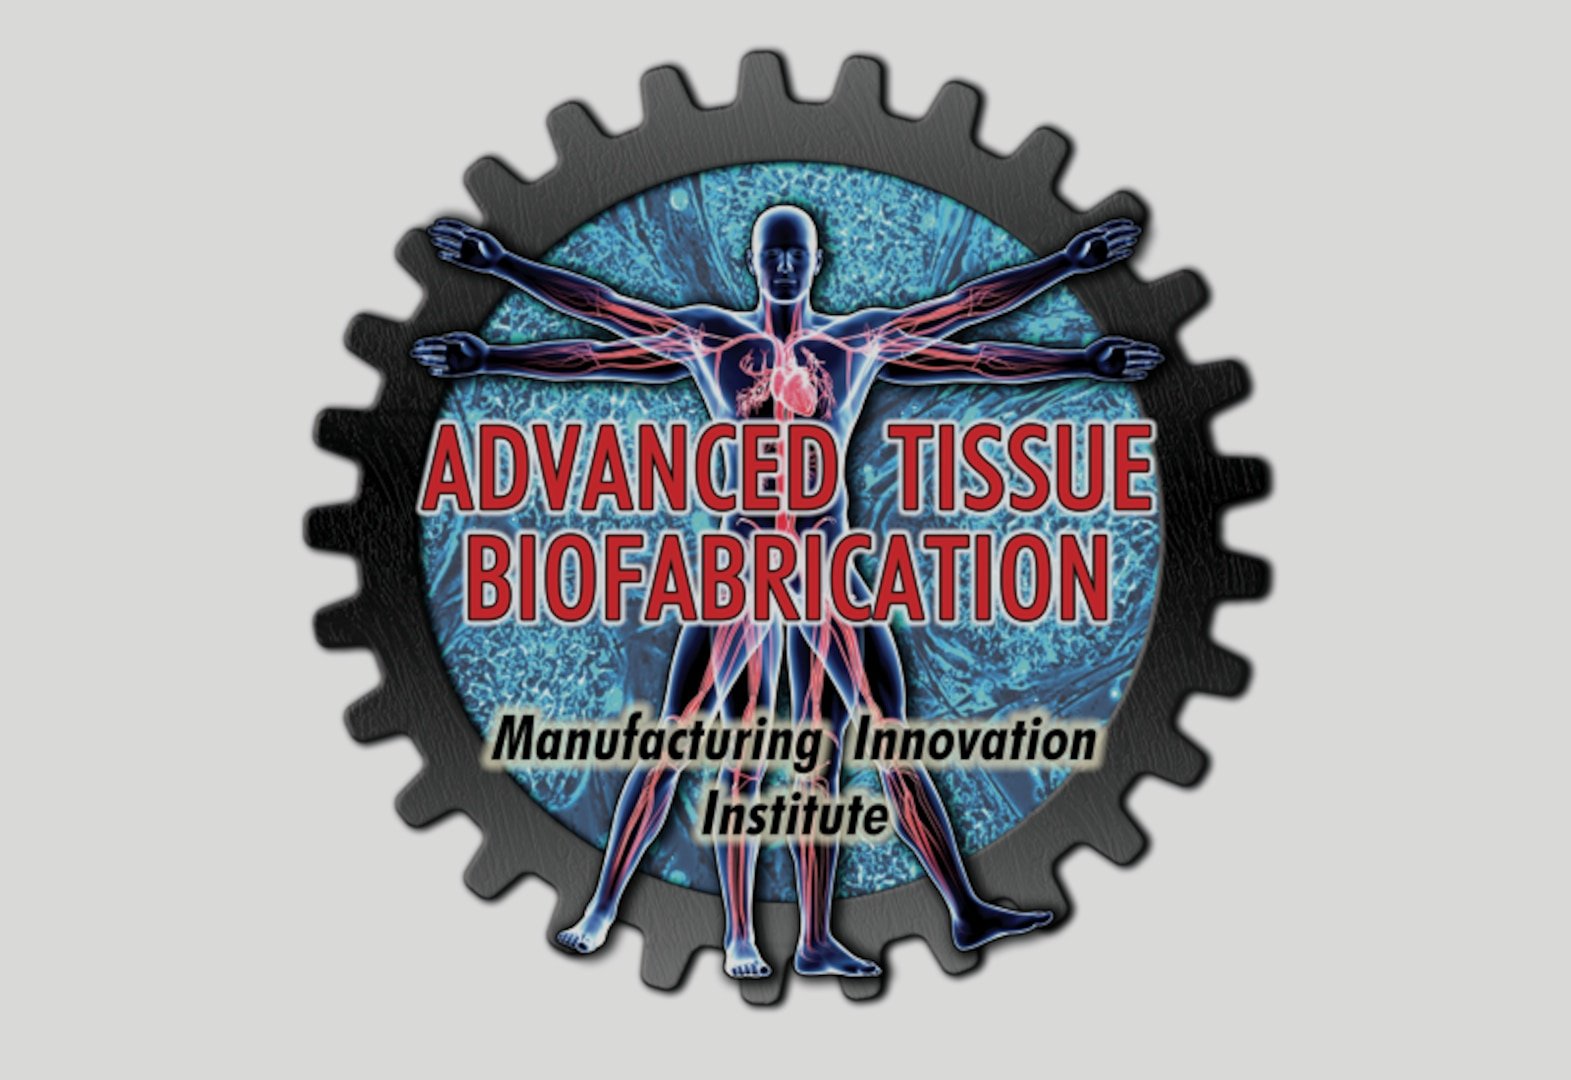 Advanced Tissue Biofabrication Manufacturing Innovation Institute